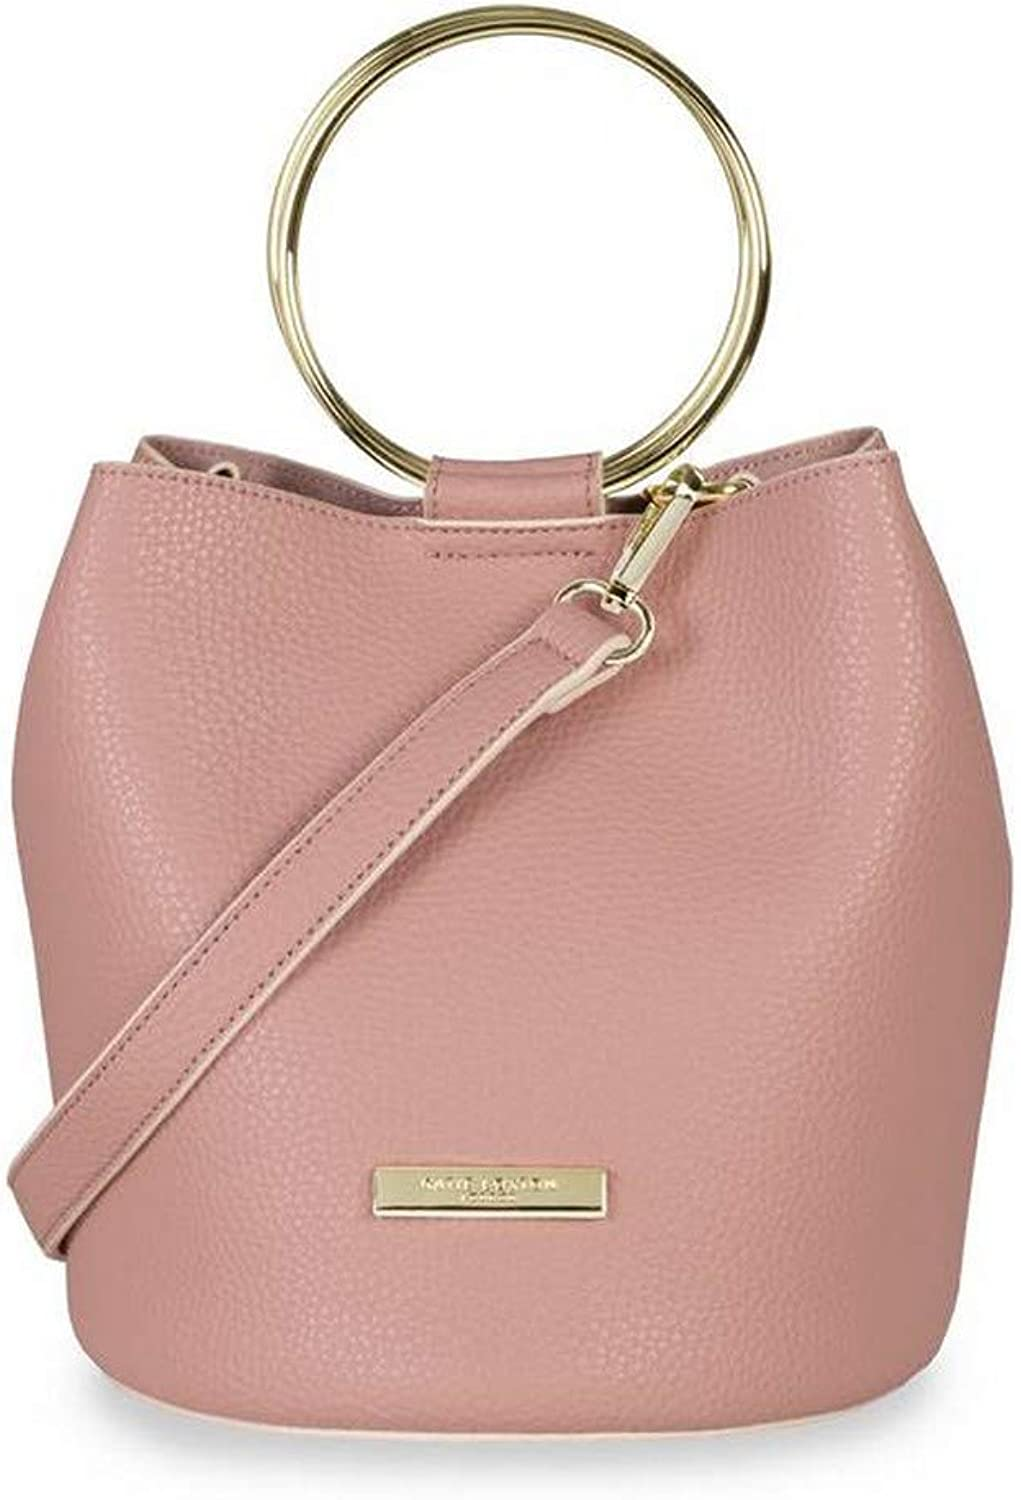 Katie Loxton Suki Bucket Bag Women's Faux Leather Shoulder Handbag Purse